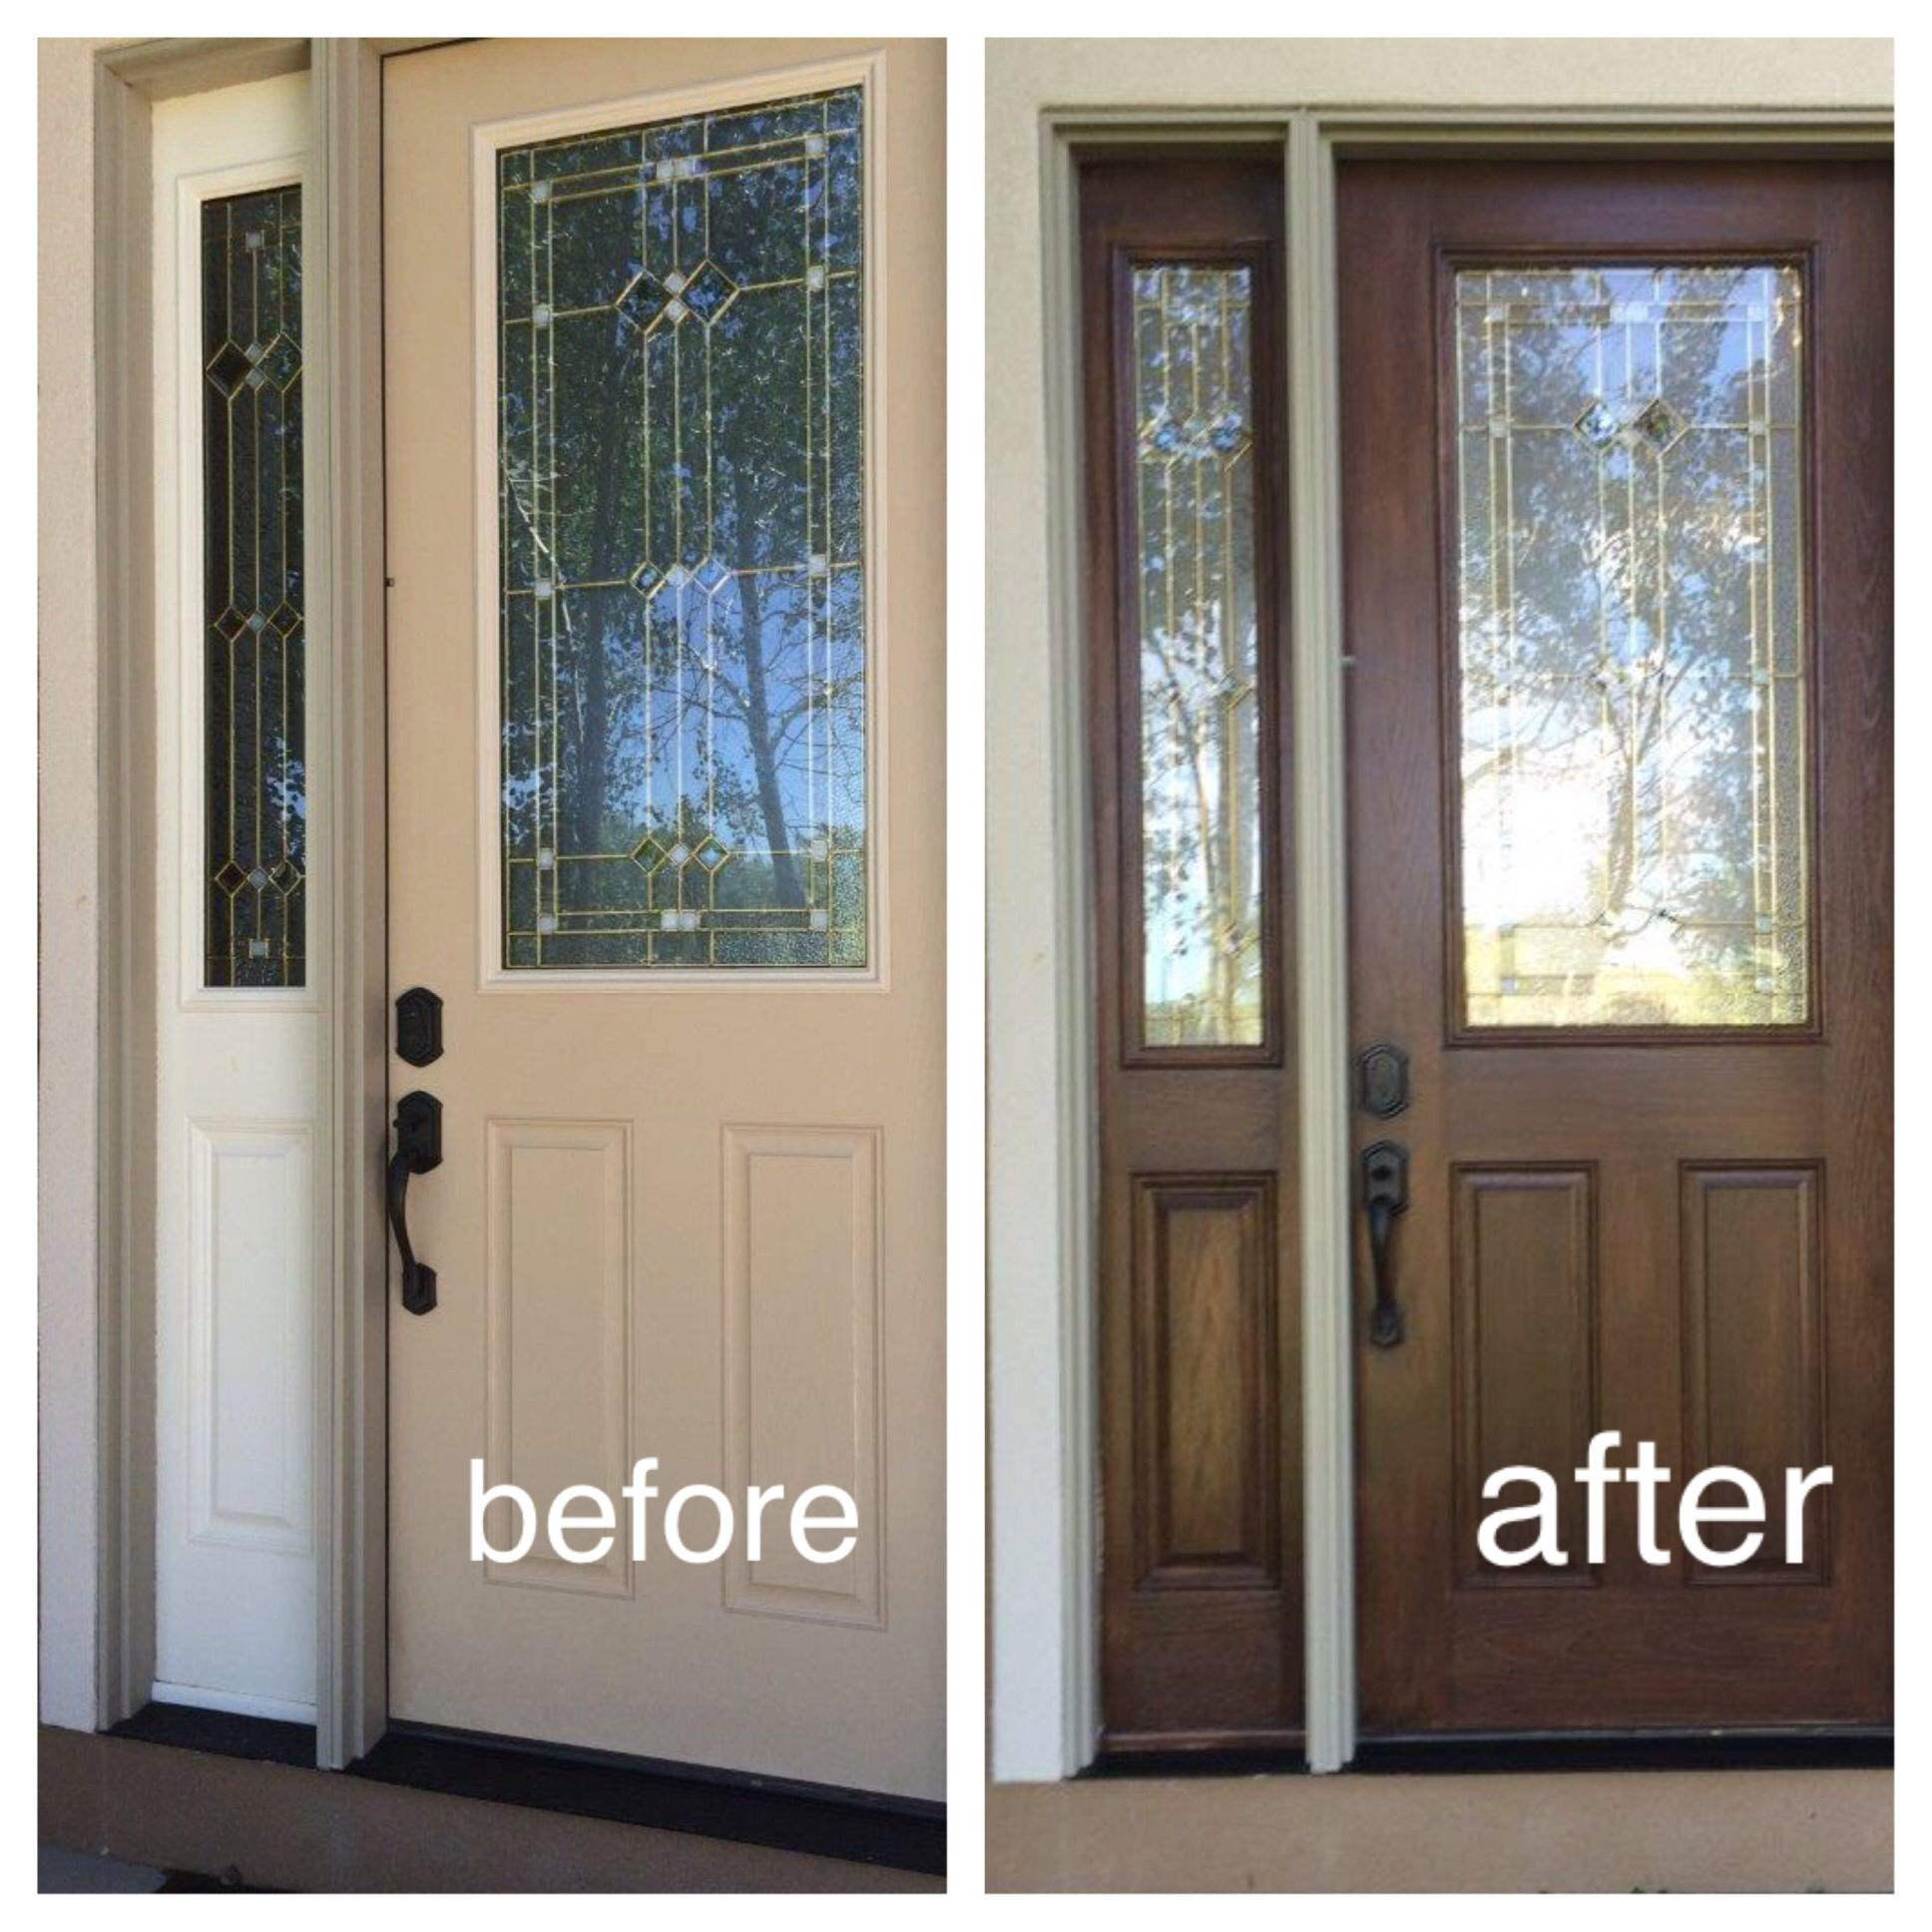 My Fiberglass Front Door Had Wood Grain So I Decided To Use Zar Wood